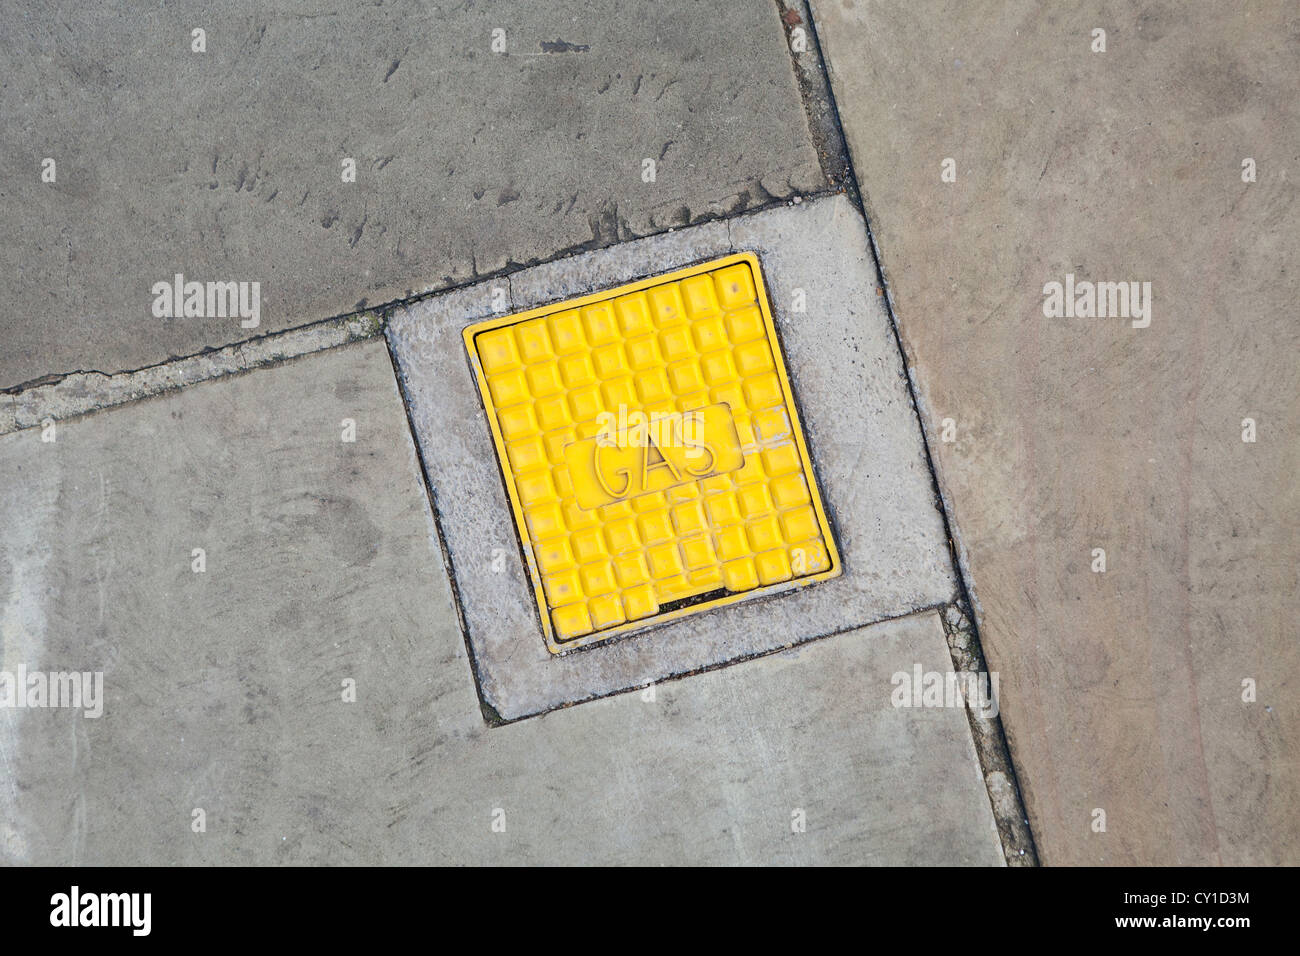 Gas manhole cover in pavement, UK - Stock Image